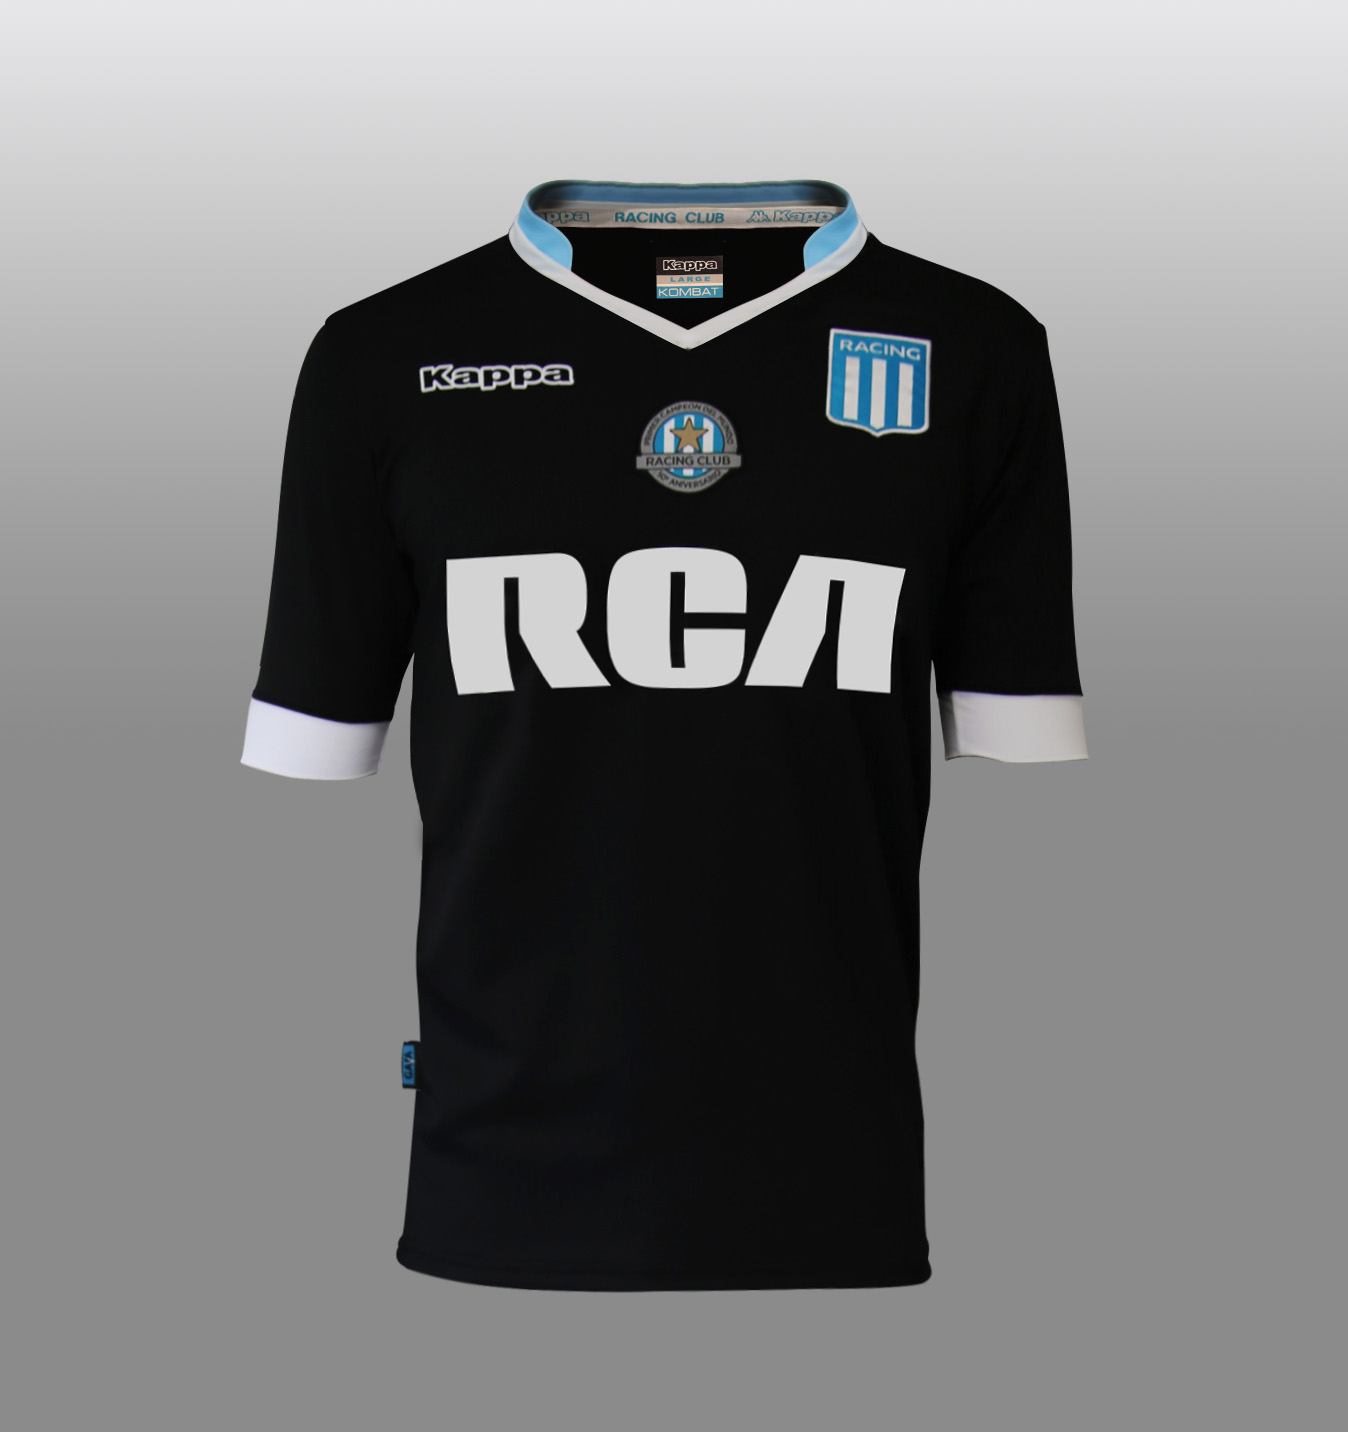 Camiseta alternativa de Racing | Foto Web Oficial